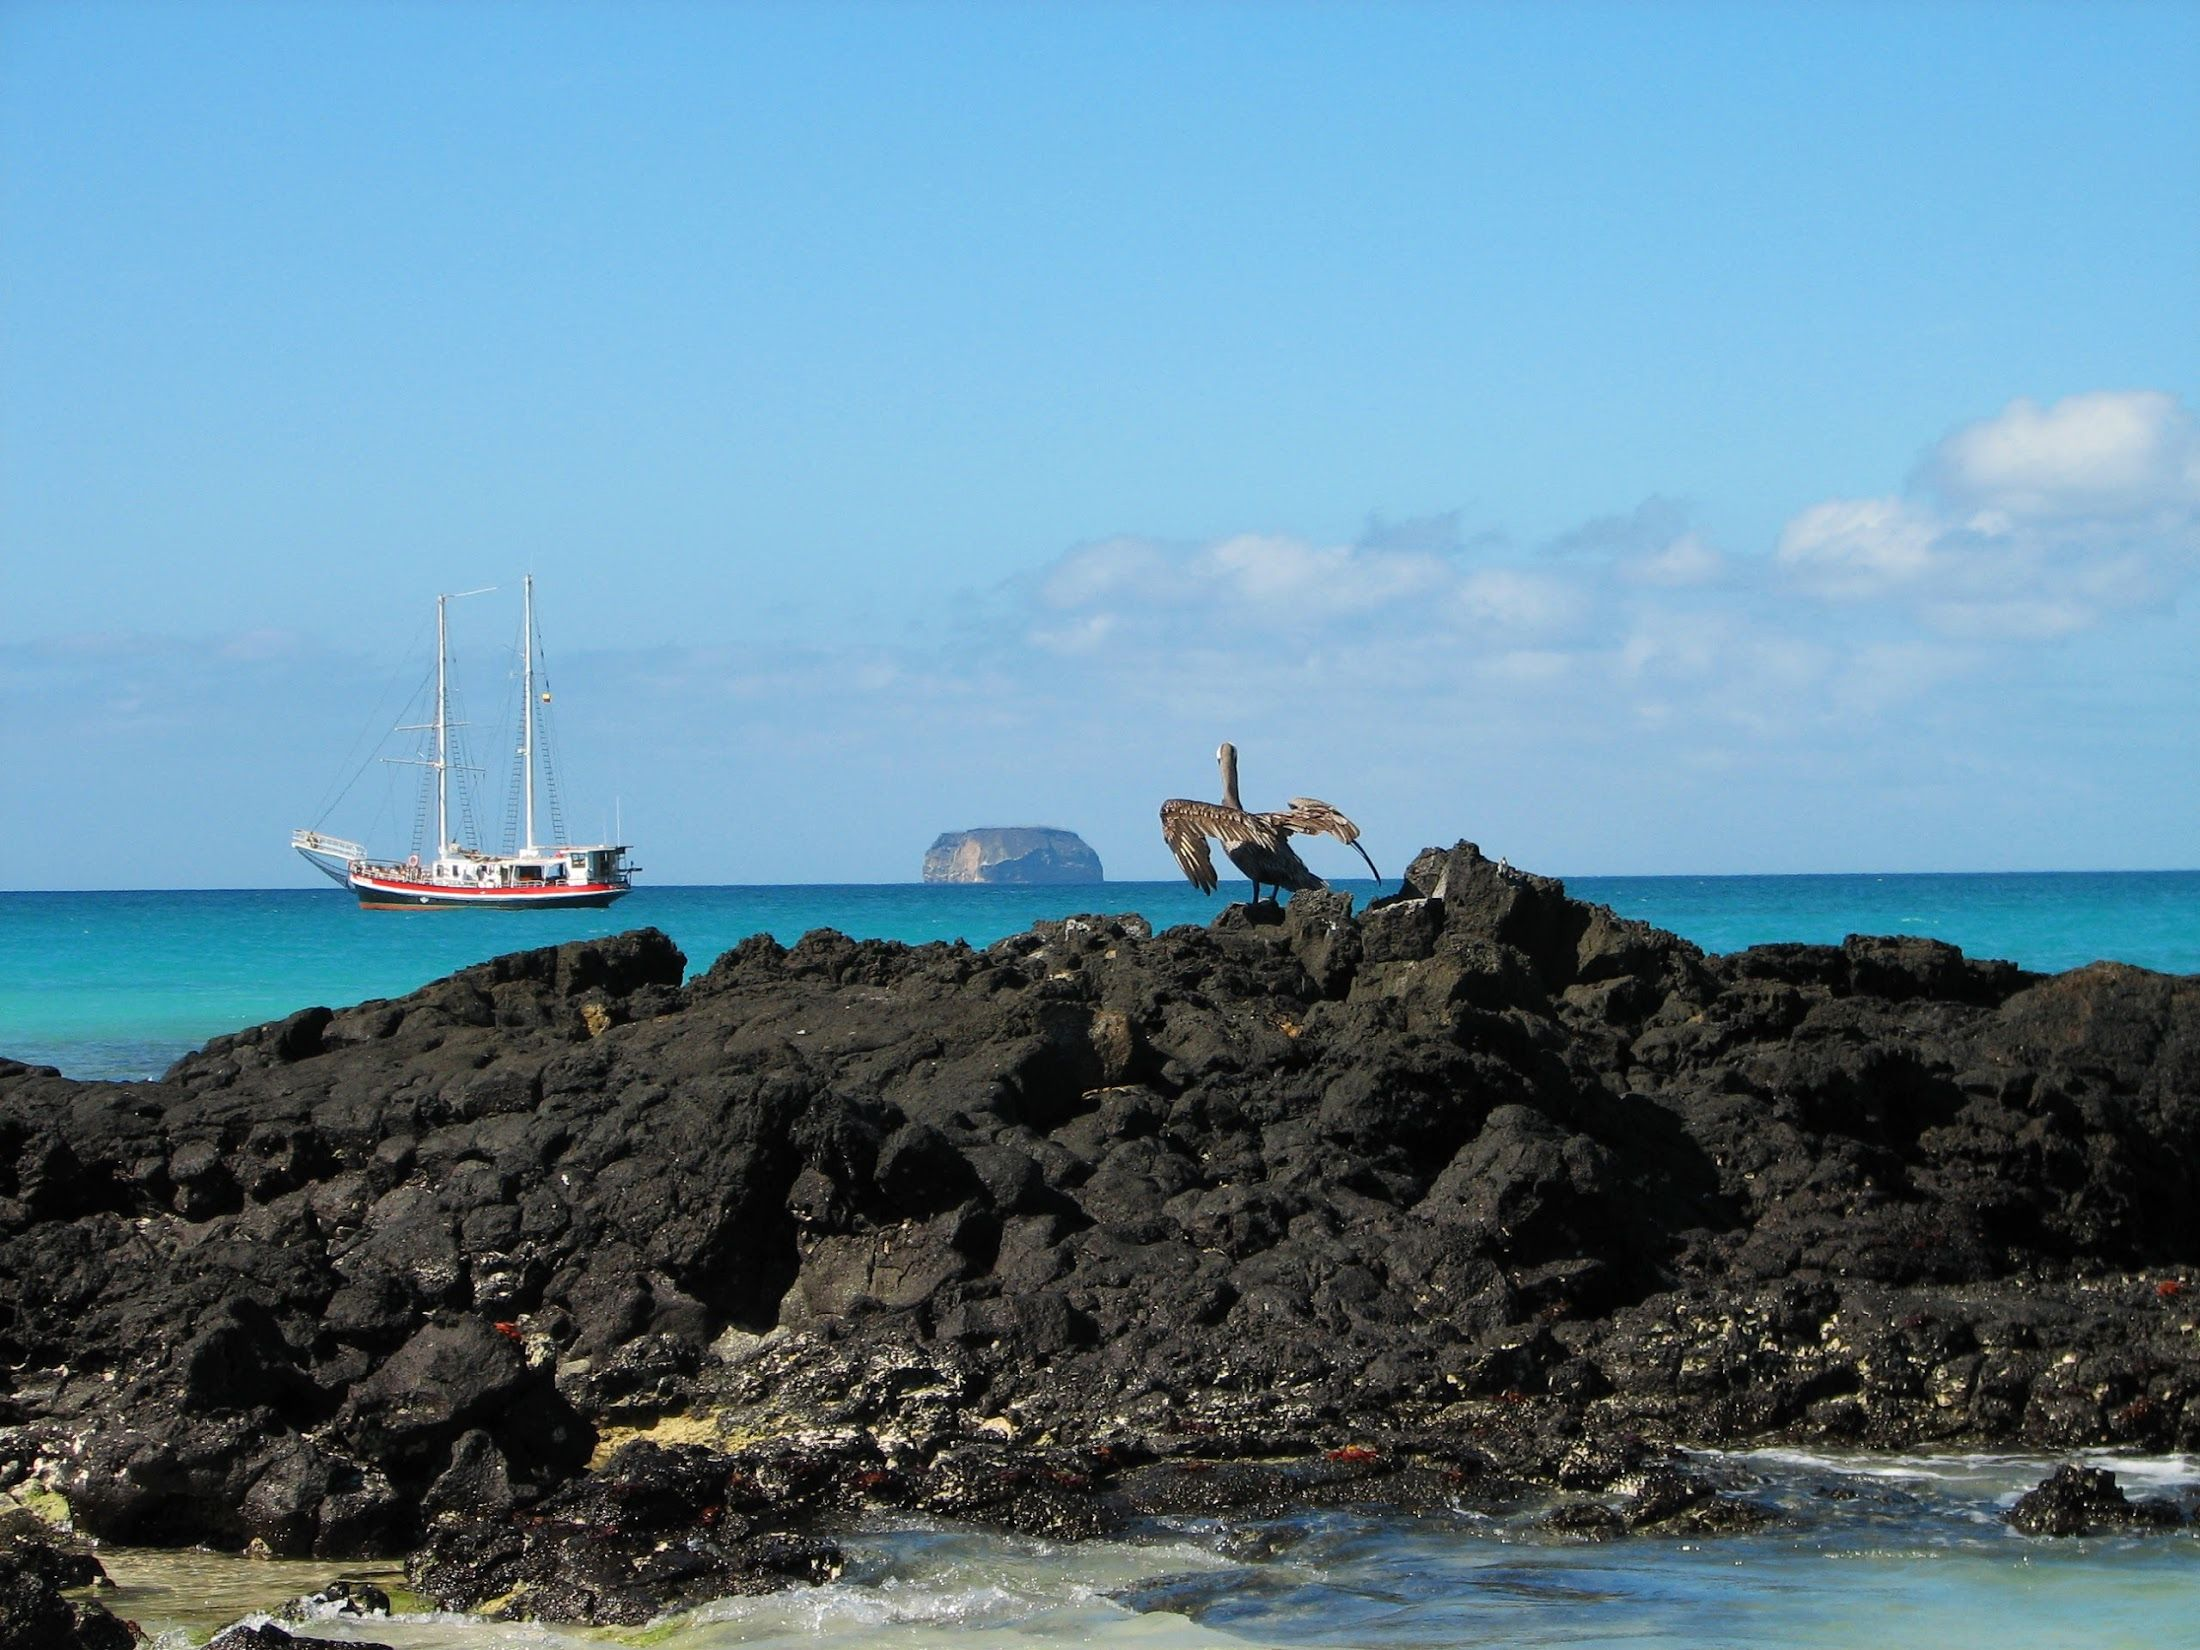 The best way to visit the Galapagos is as a liveaboard cruise, and as exclusive as it may, it is a once-in-a-lifetime experience.